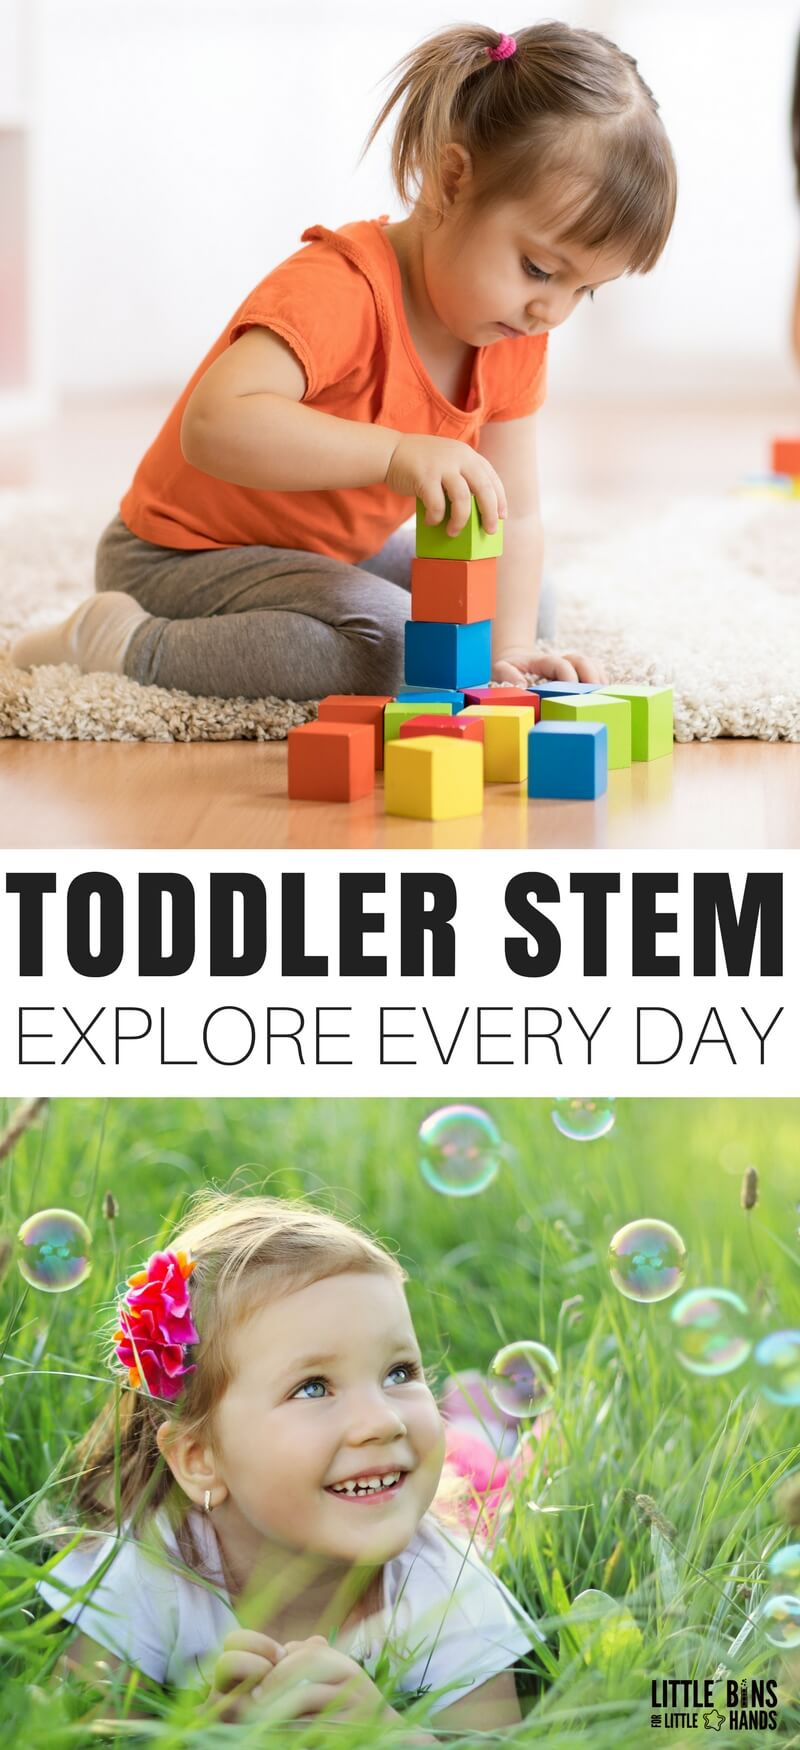 STEM is such a popular topic, and I know all of you are interested in finding ways to incorporate STEM into the every day with multiple ages. The beauty of Toddler STEM activities is that they just seem to happen naturally because kids are so curious. All you need are a few playful science and STEM activities that blend right into what you already do every day!